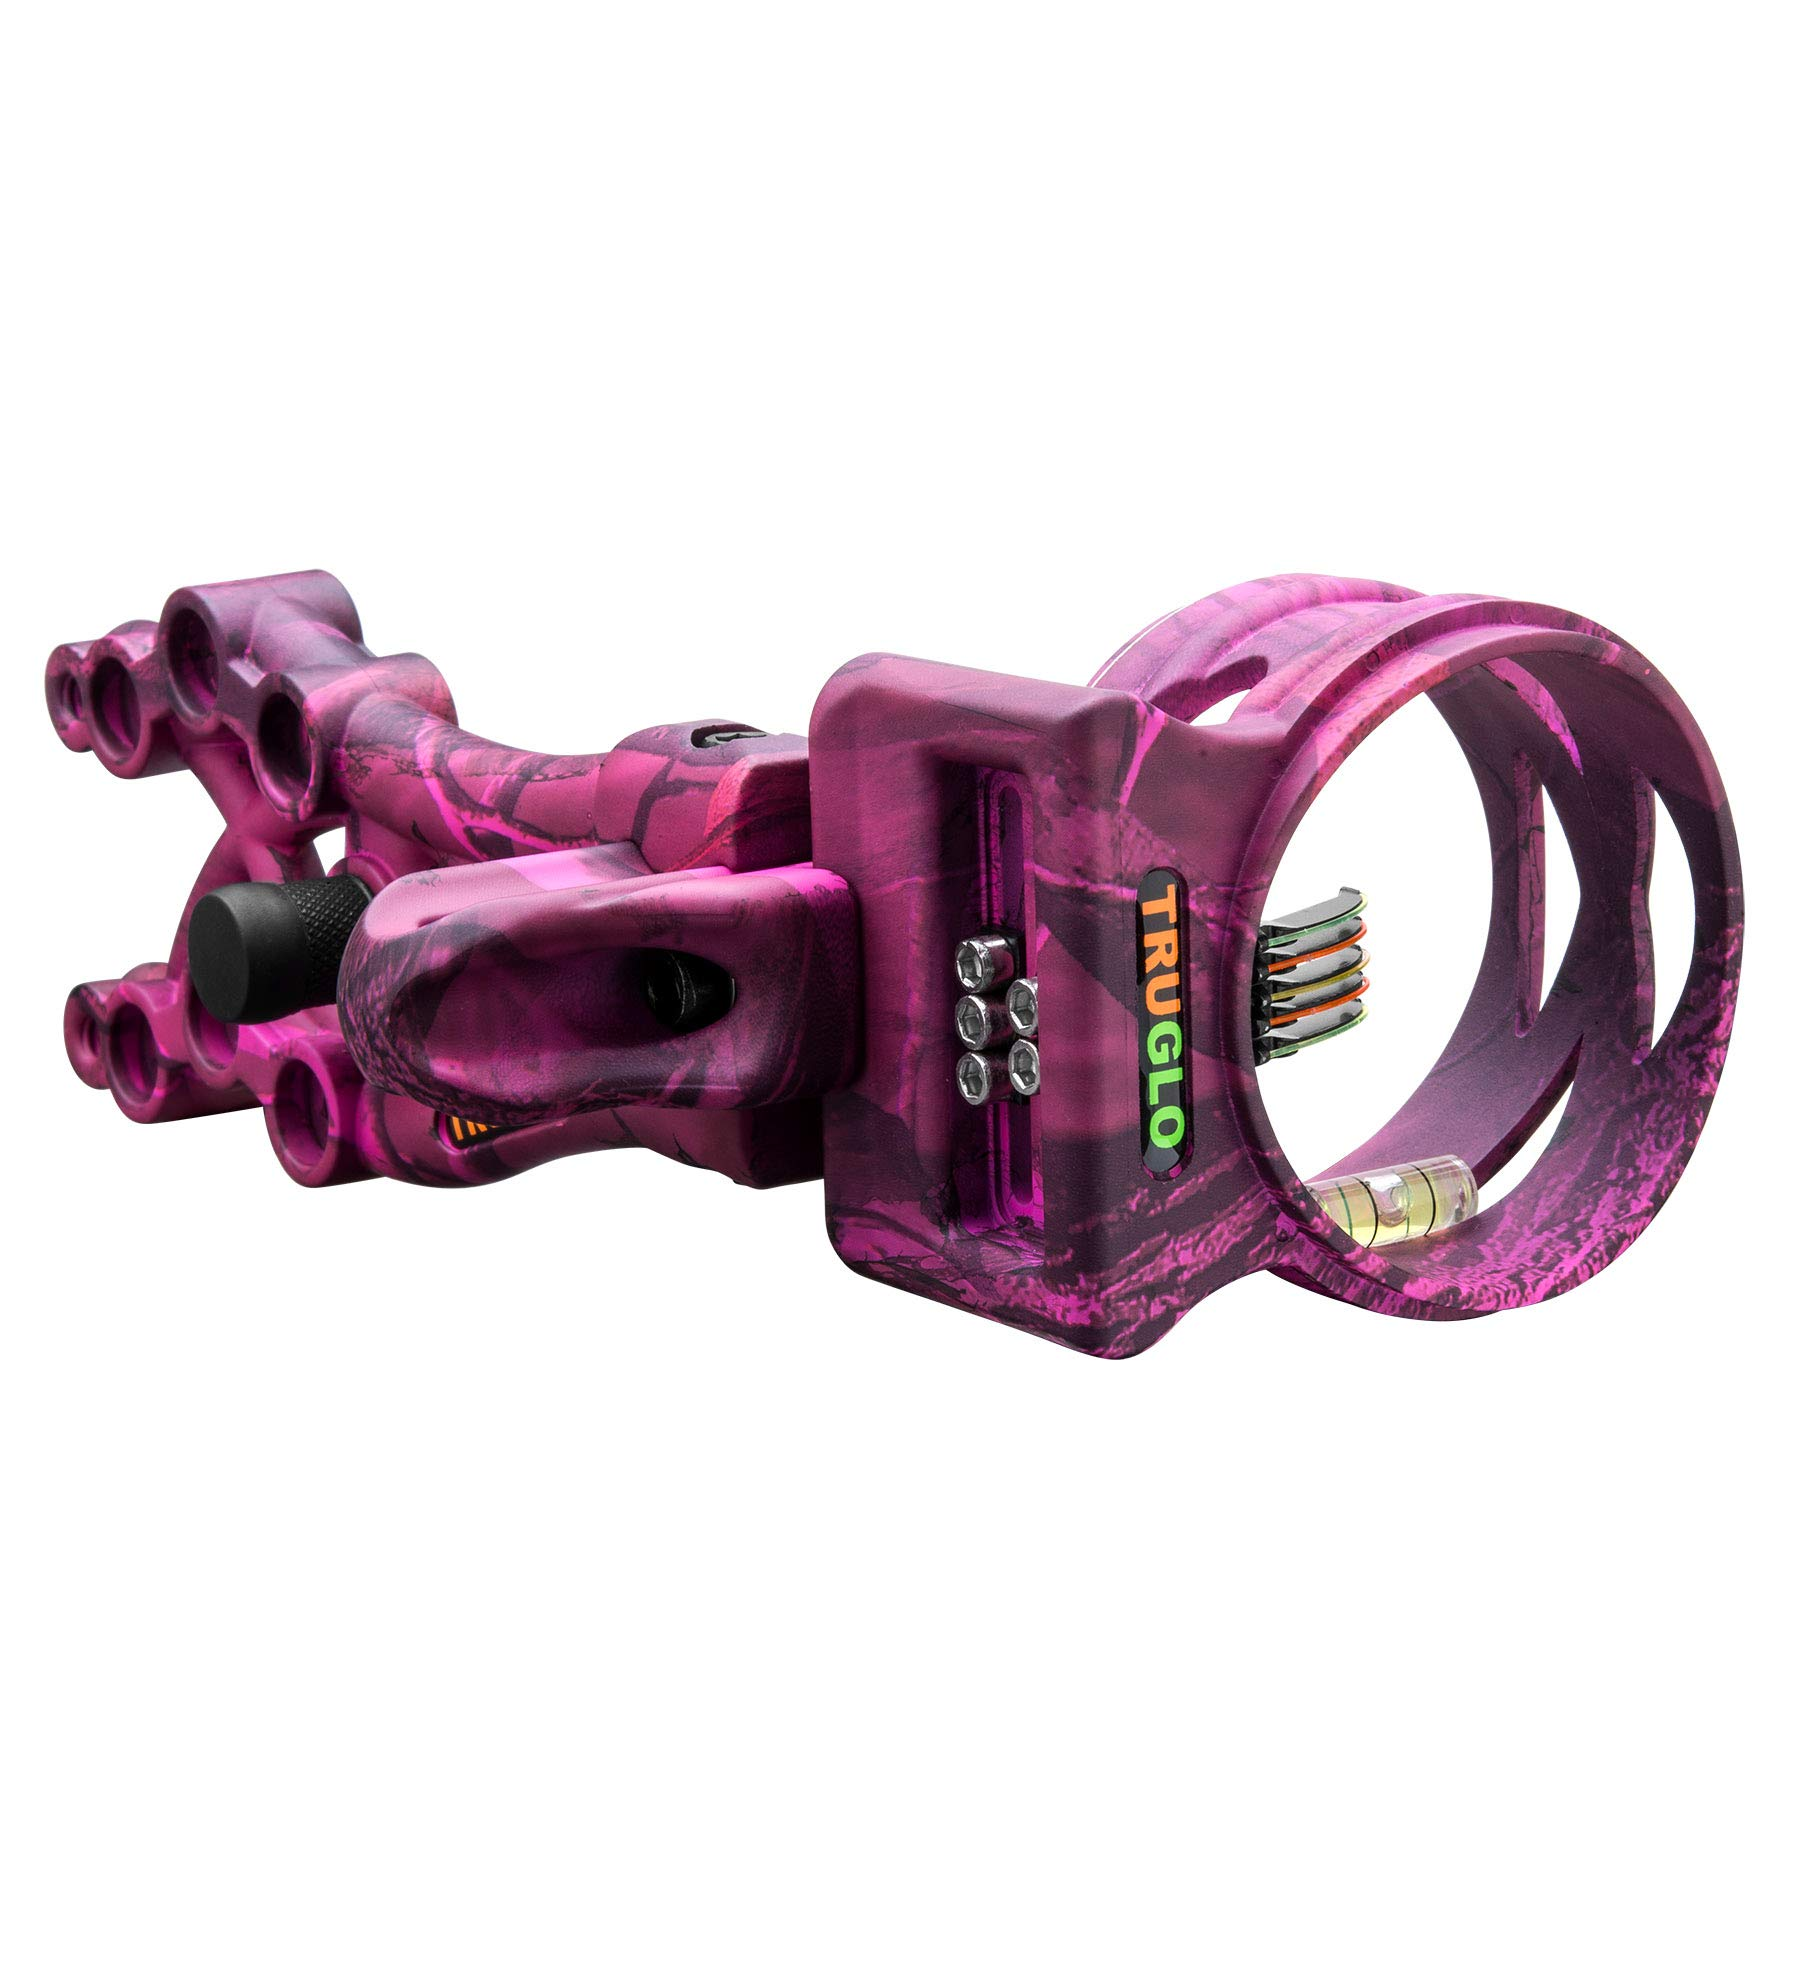 TRUGLO Carbon XS Xtreme Ultra-Lightweight Carbon-Composite Bow Sight, Realtree APC Pink Camo by TRUGLO